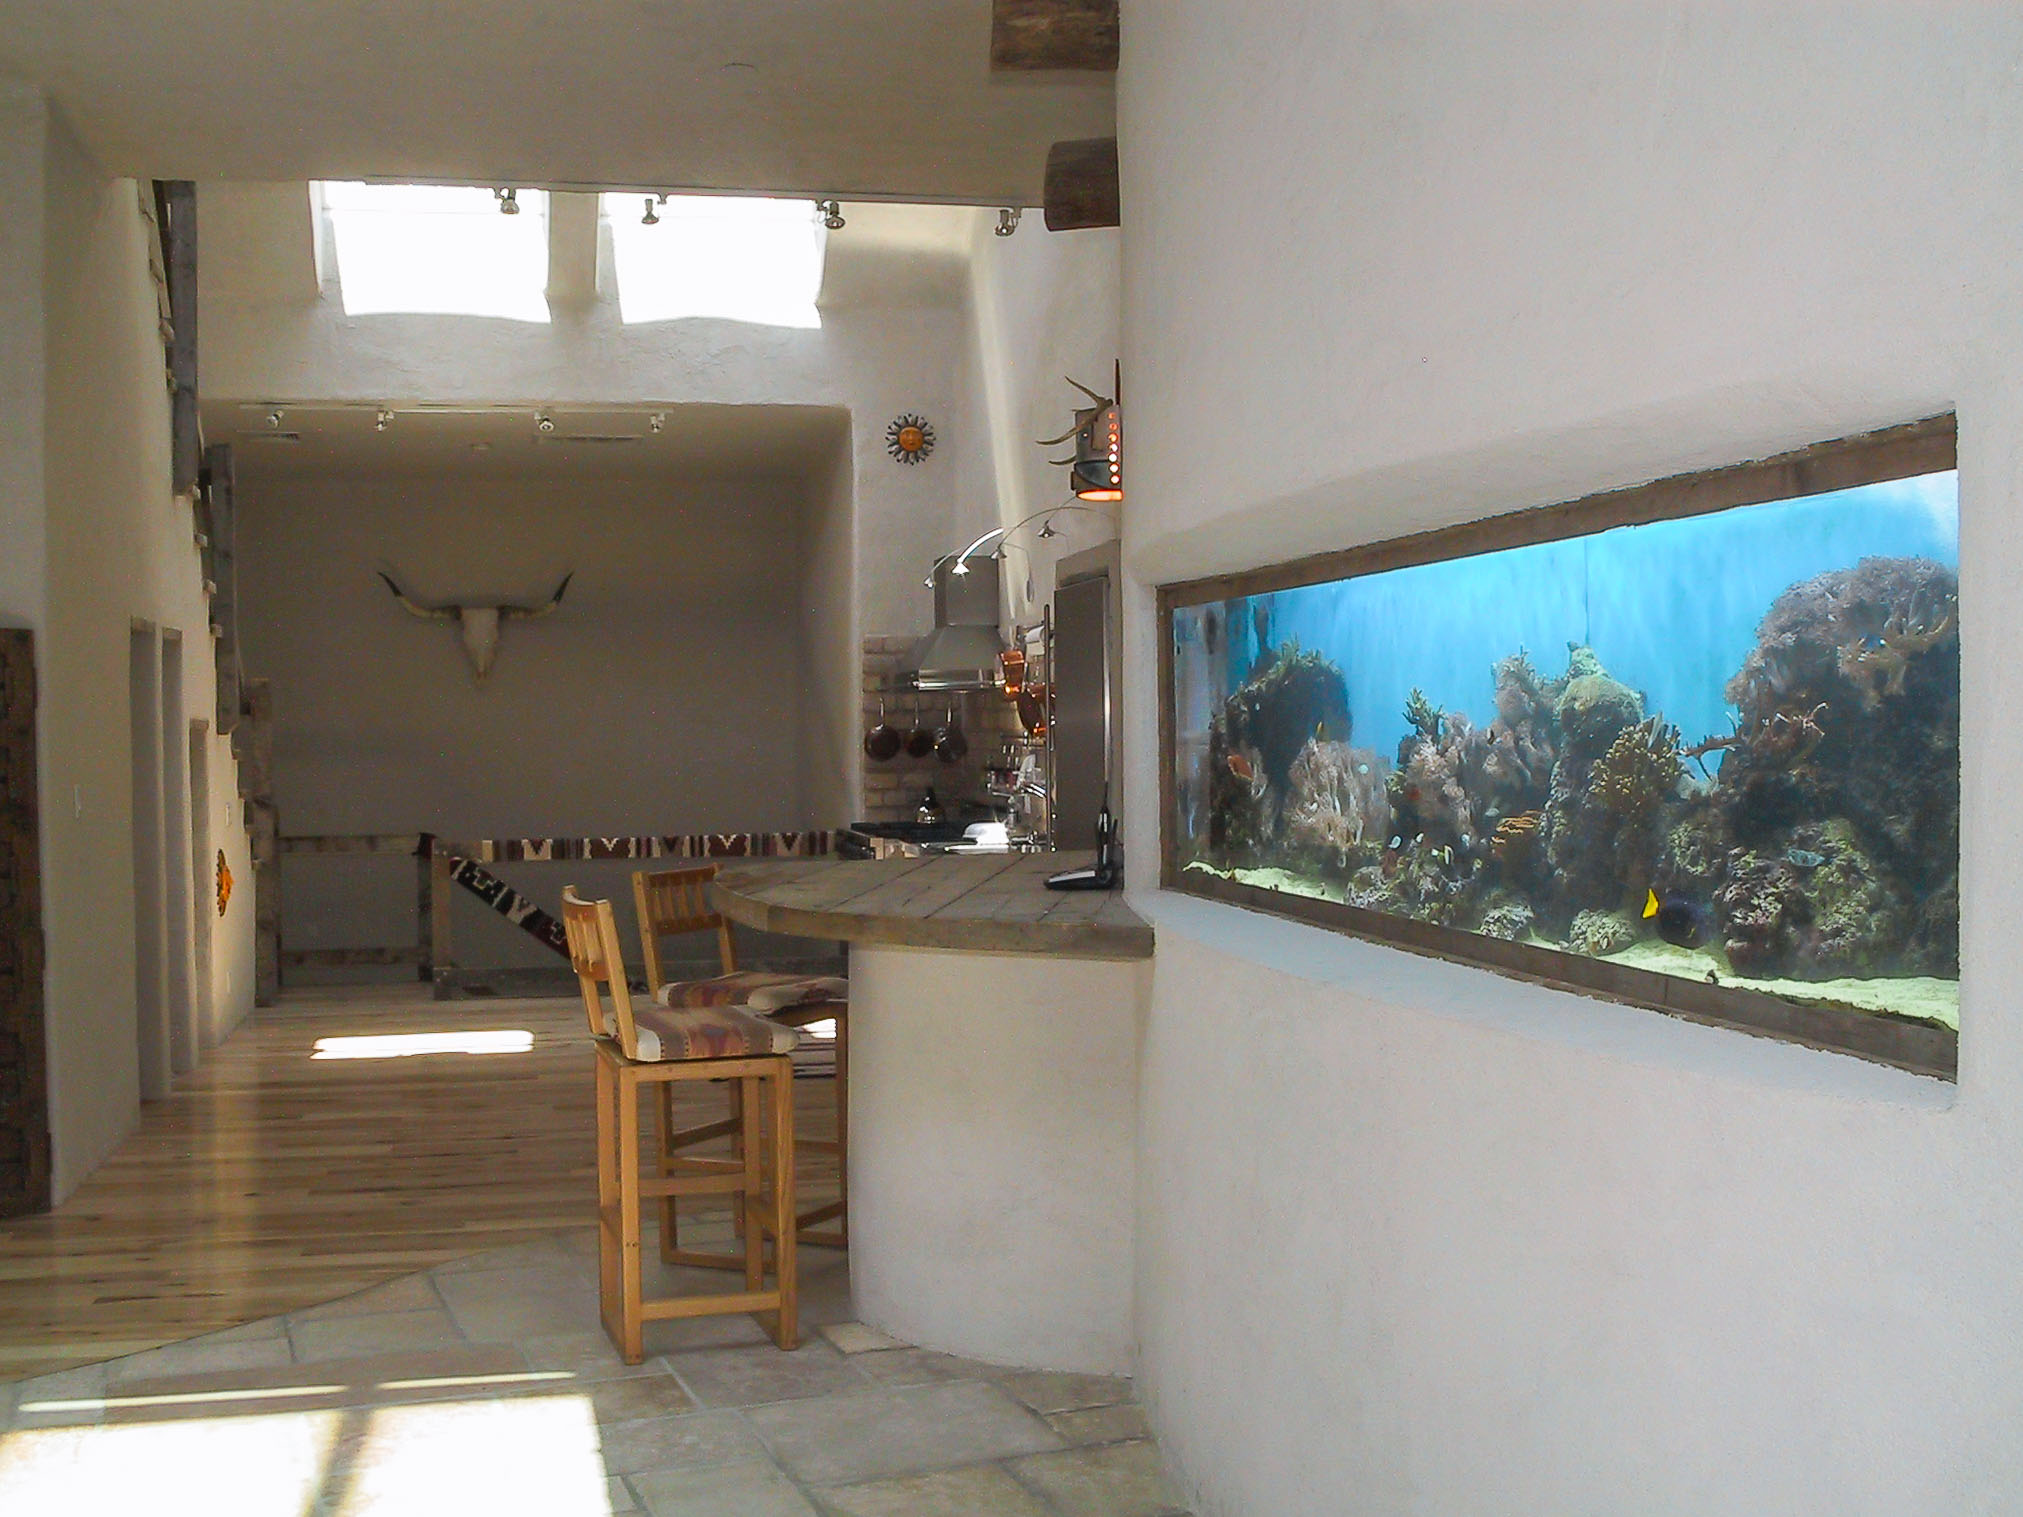 10' fish tank in adobe curved wall